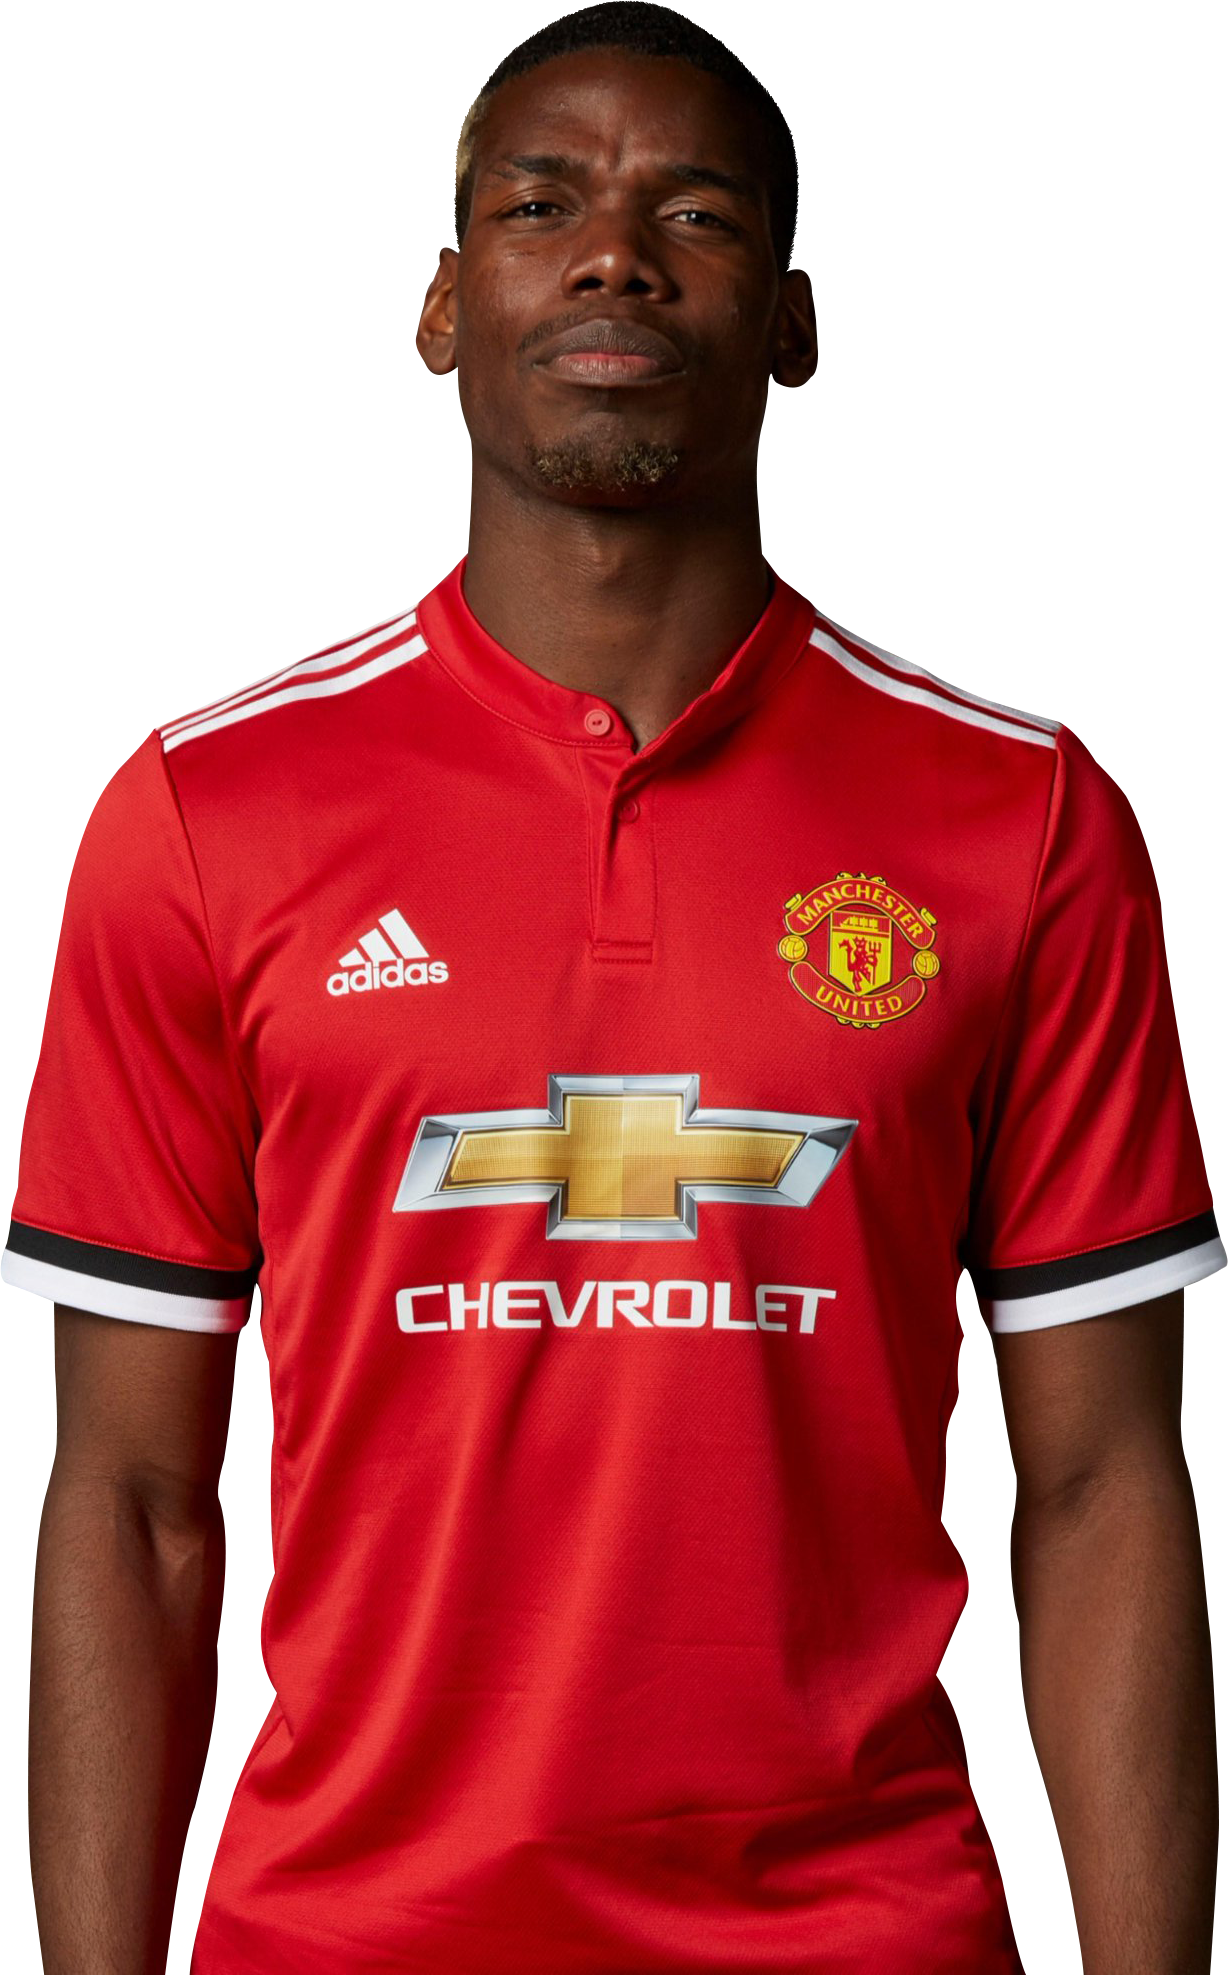 Paul Pogba, football player